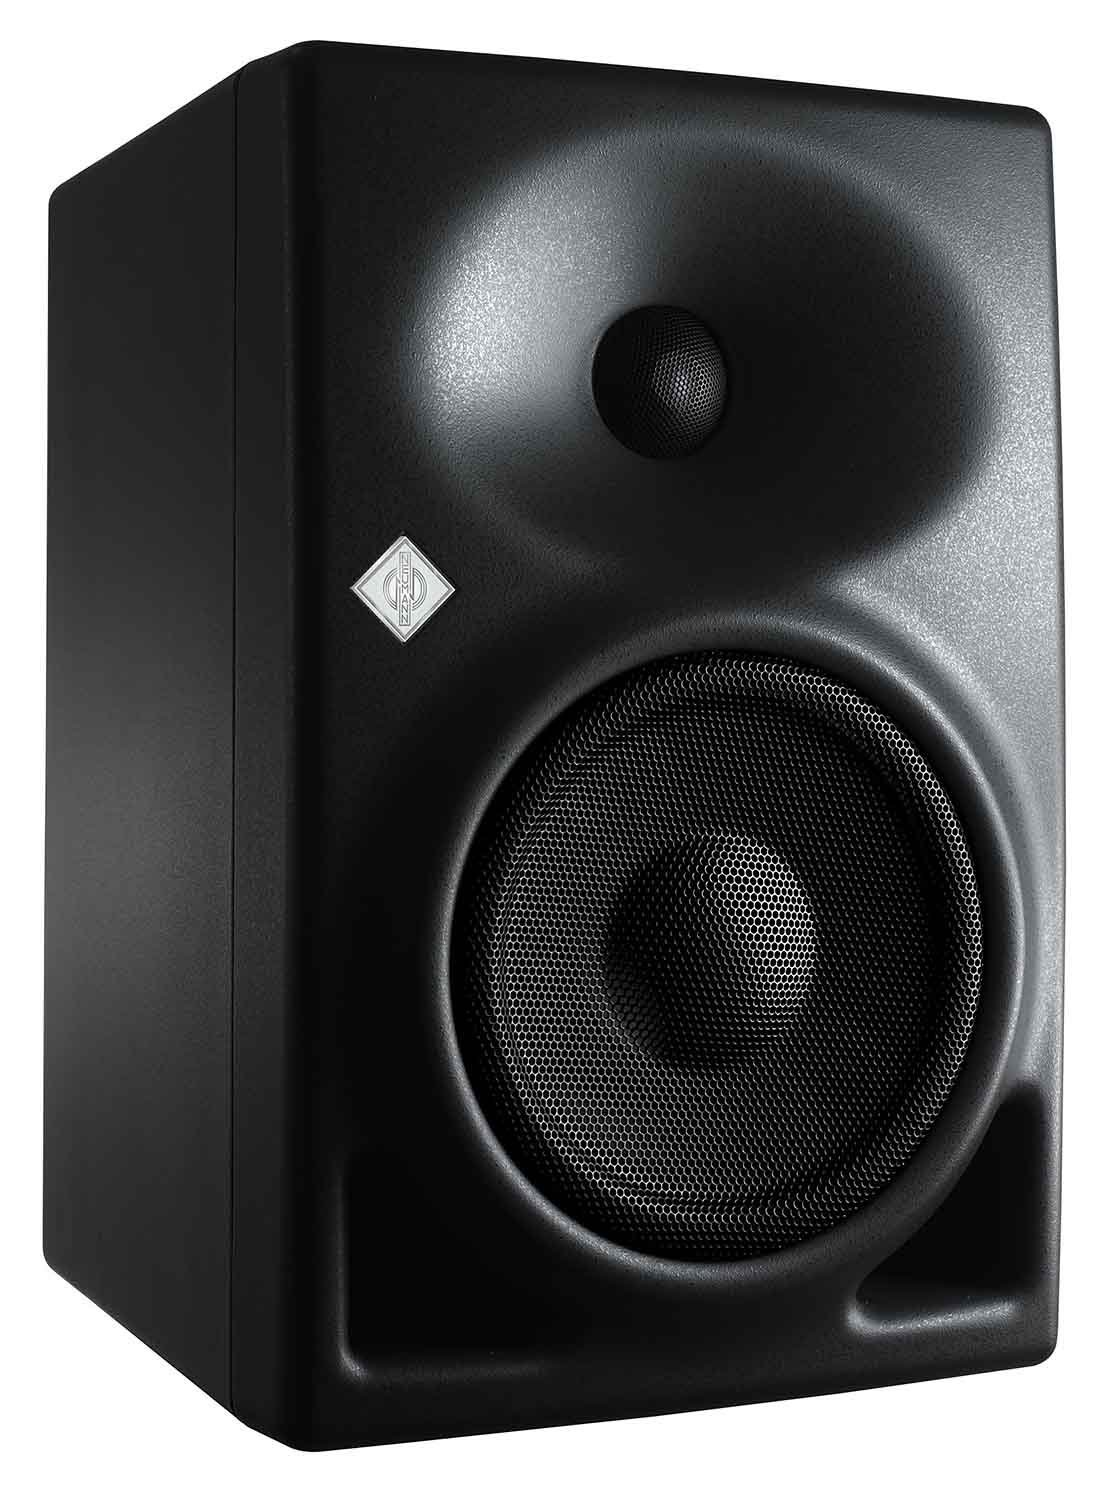 Best Studio Monitors For Mixing Hip Hop Tonctone Yamaha Hs5 Powered Monitor If You Arent Looking To Save A Dime Yet Not Necessarily Needing Break The Bank Then I Have Perfect Set Of